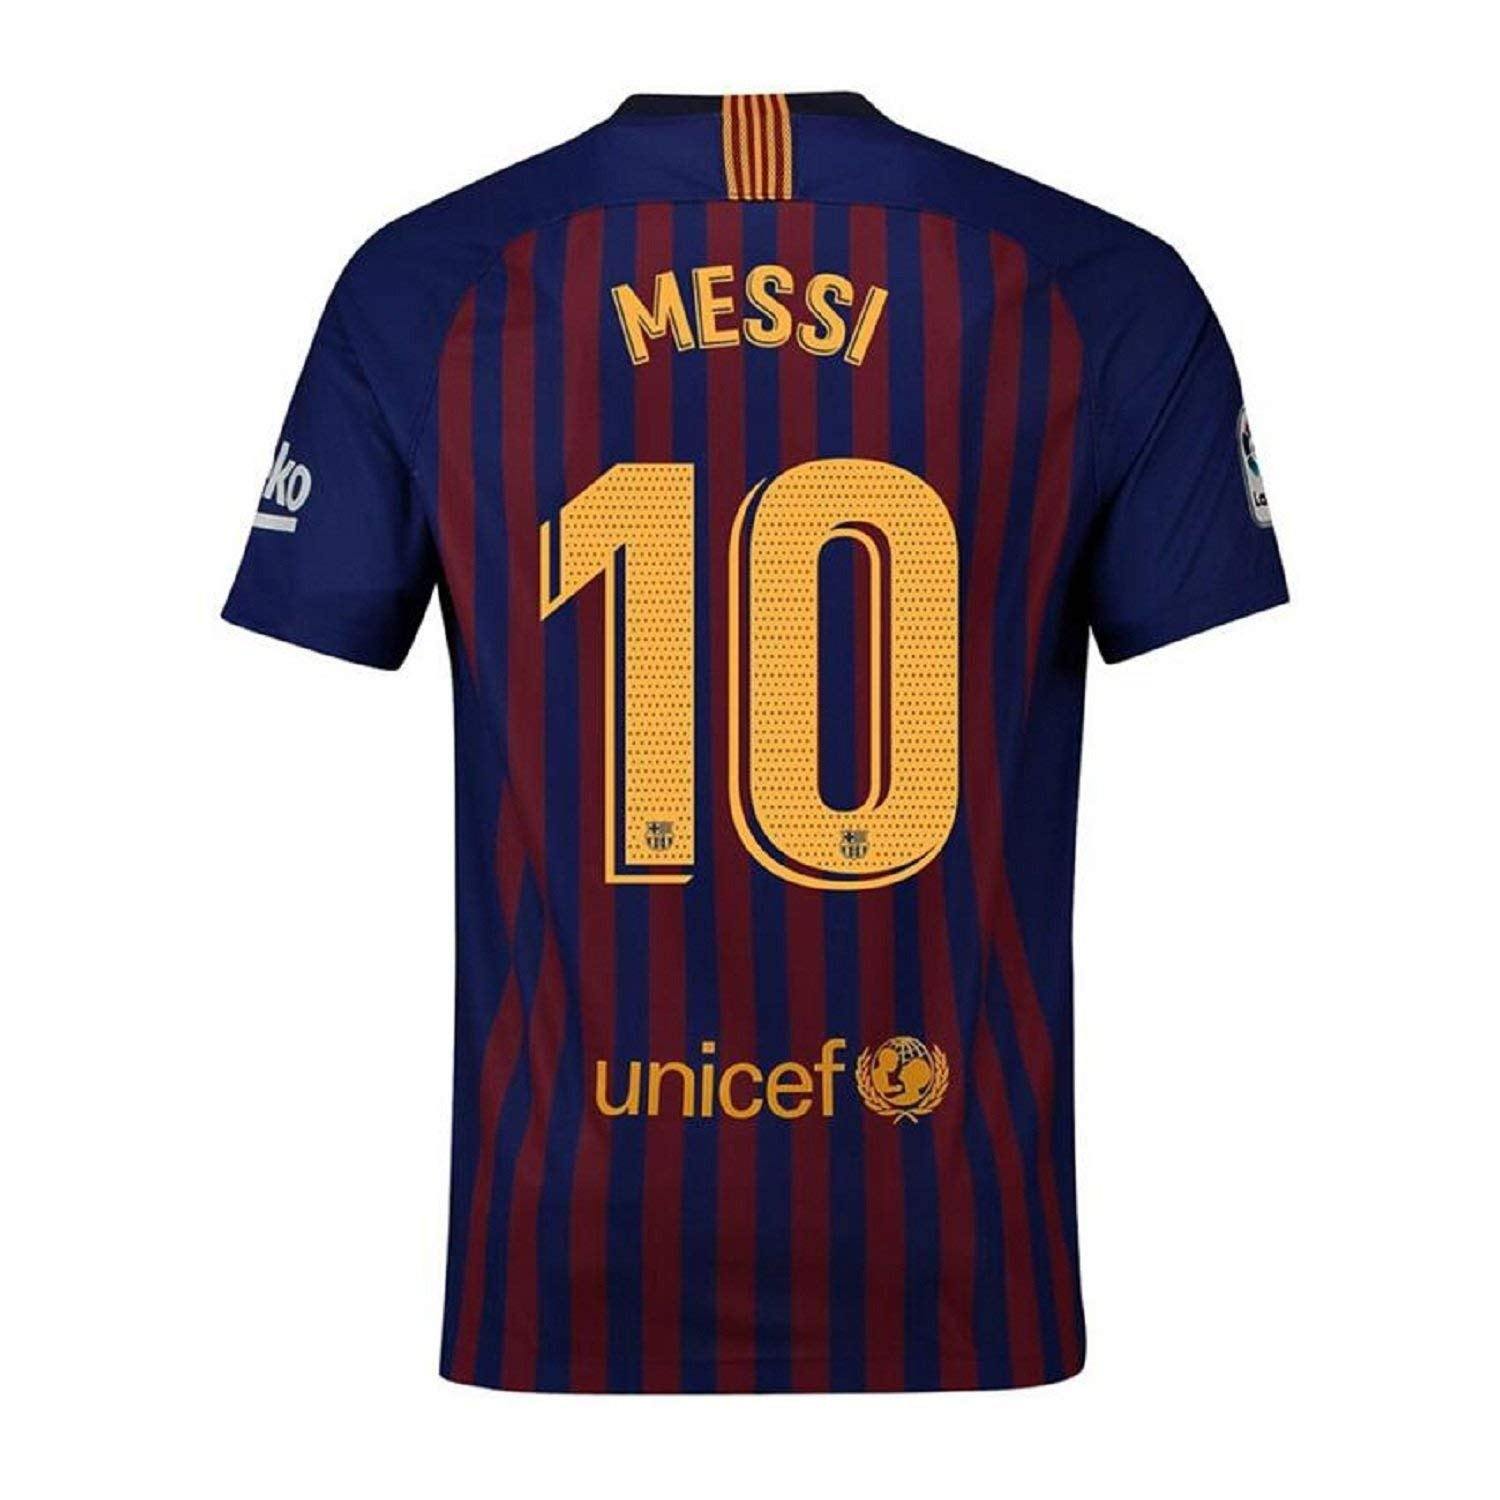 c8a2532d2 Get Quotations · Fiueker Men s Messi Jerseys Barcelona  10 Soccer Jersey  2018 2019 Home Shirt